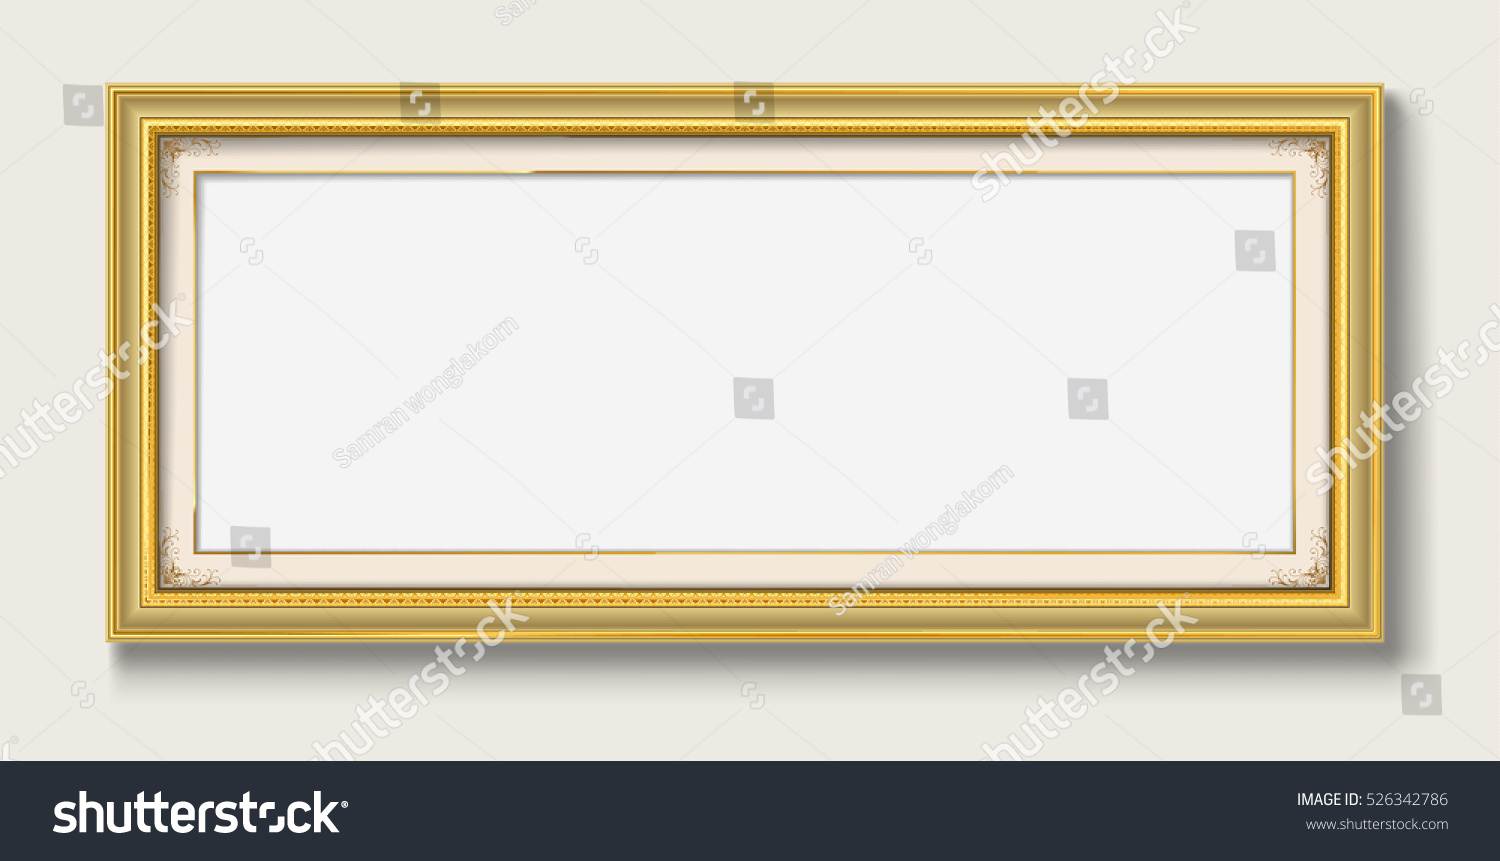 Panorama gold picture frame stock vector 526342786 shutterstock panorama gold picture frame jeuxipadfo Gallery